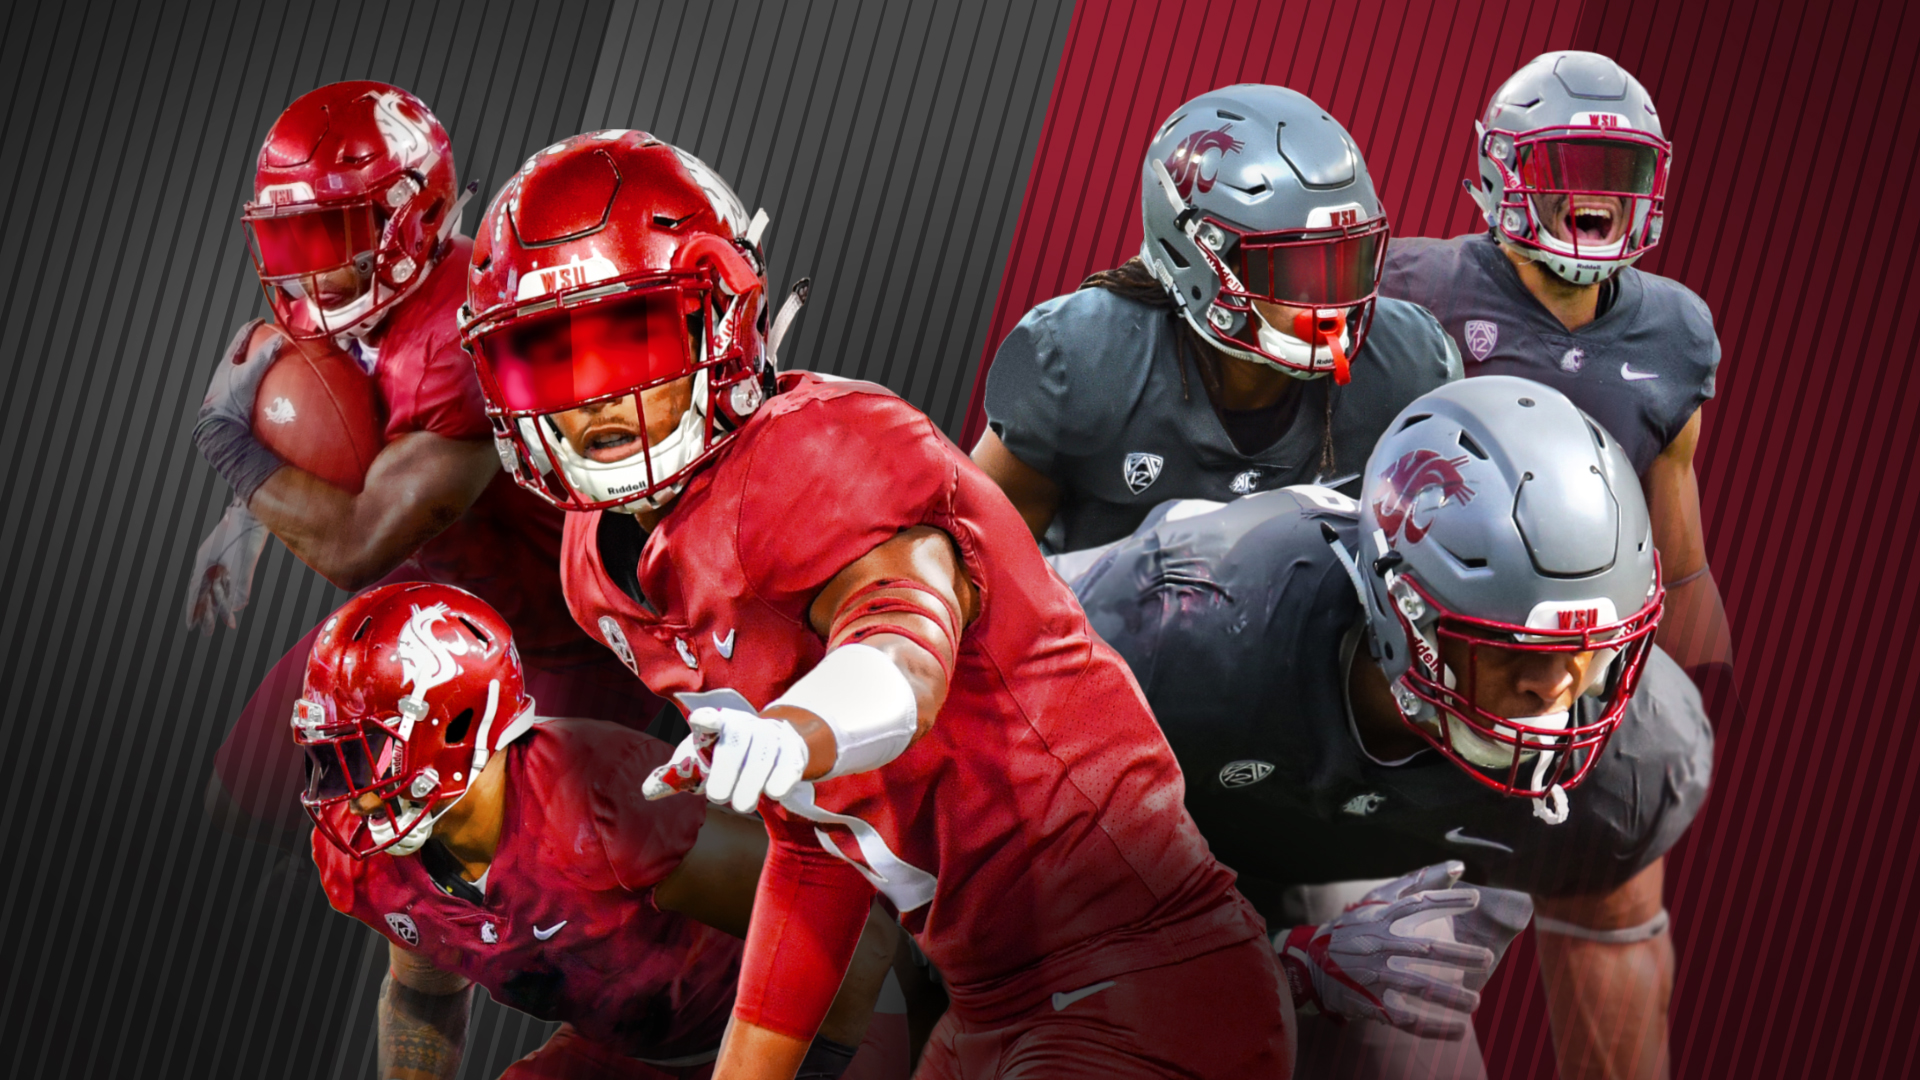 Cougars Begin Crimson and Gray Week